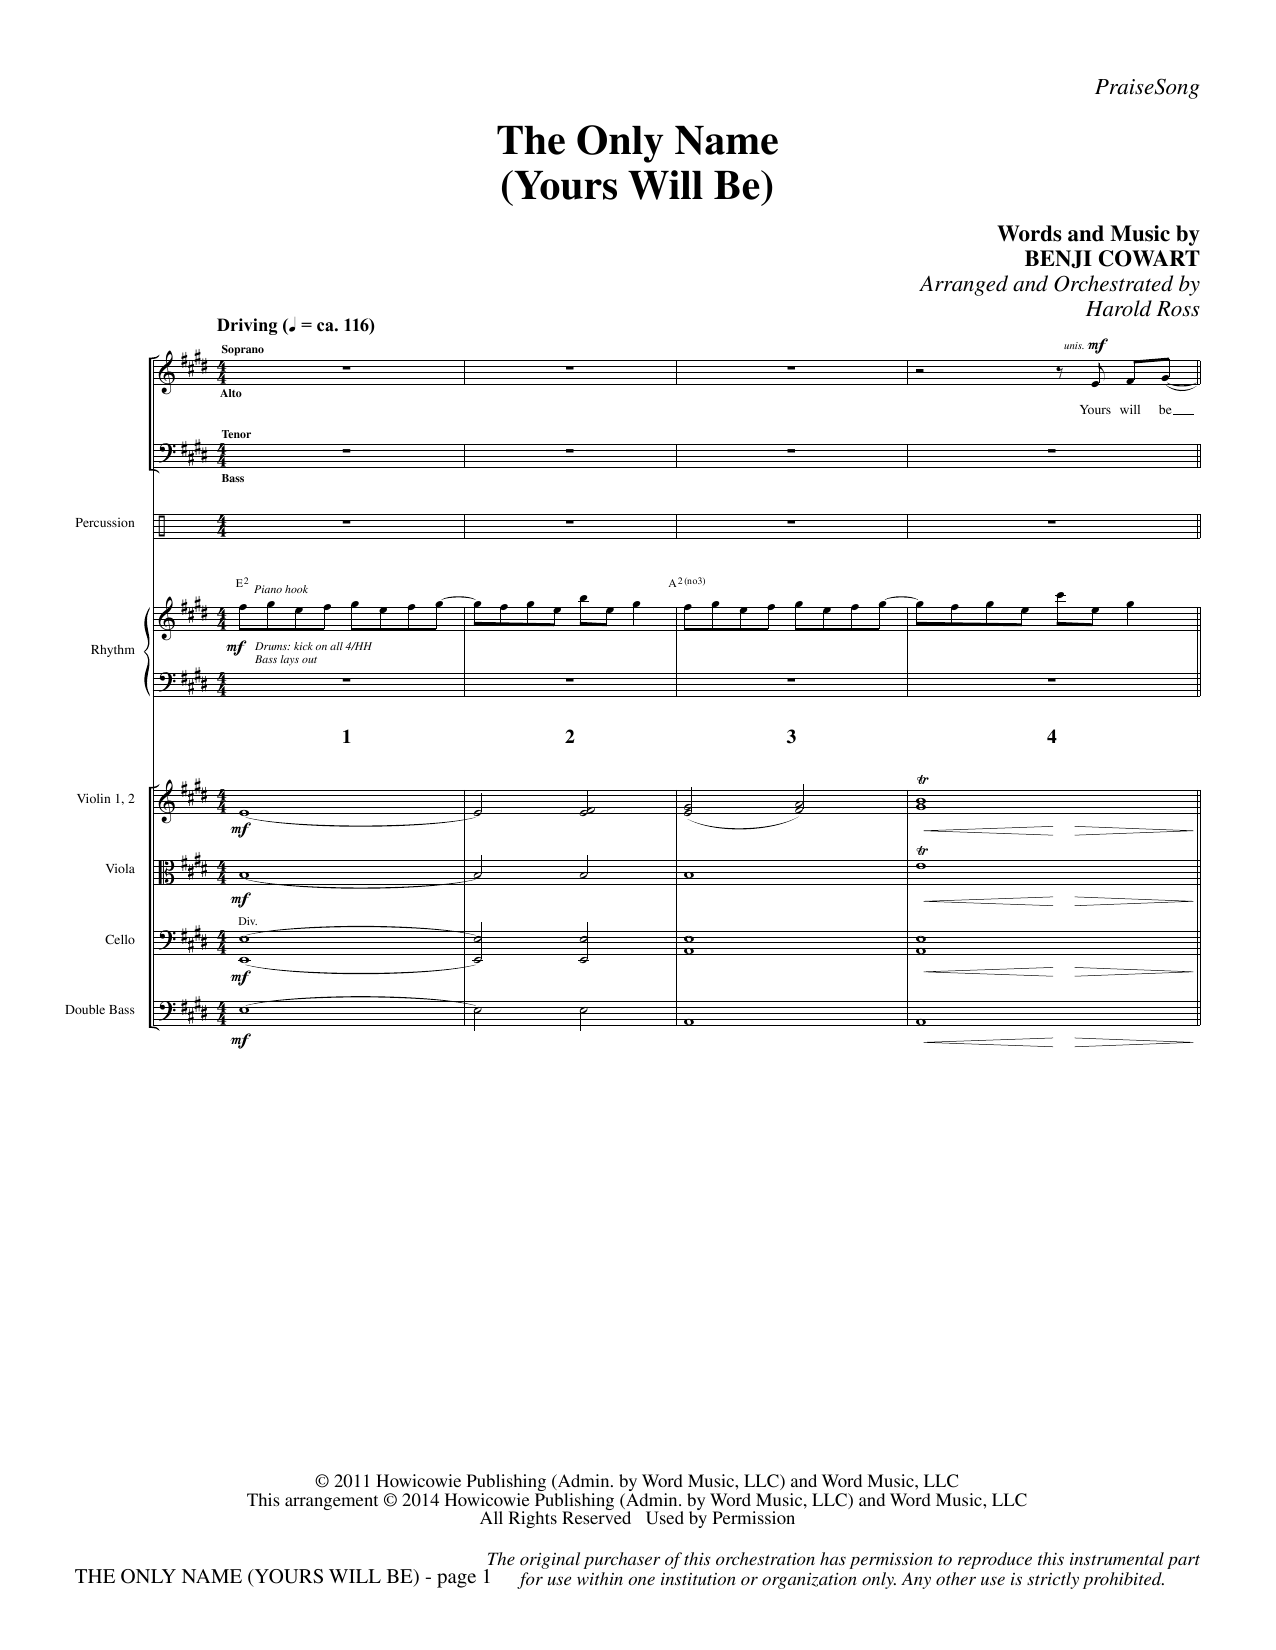 The Only Name (Yours Will Be) - Full Score Sheet Music